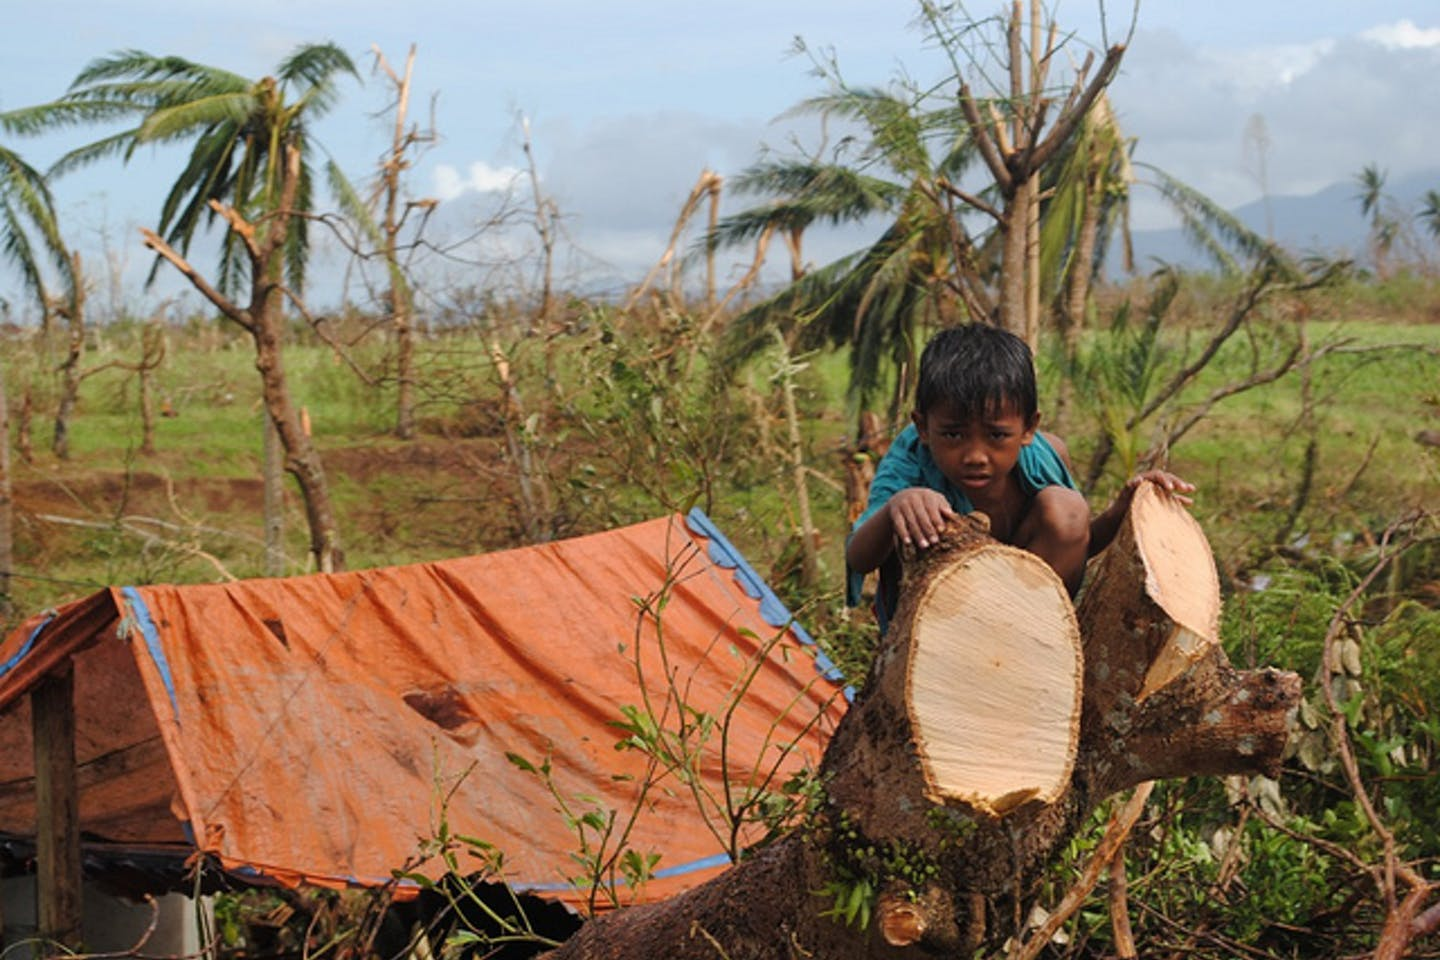 A child in Leyte Philippines, aftermath of Typhoon Haiyan